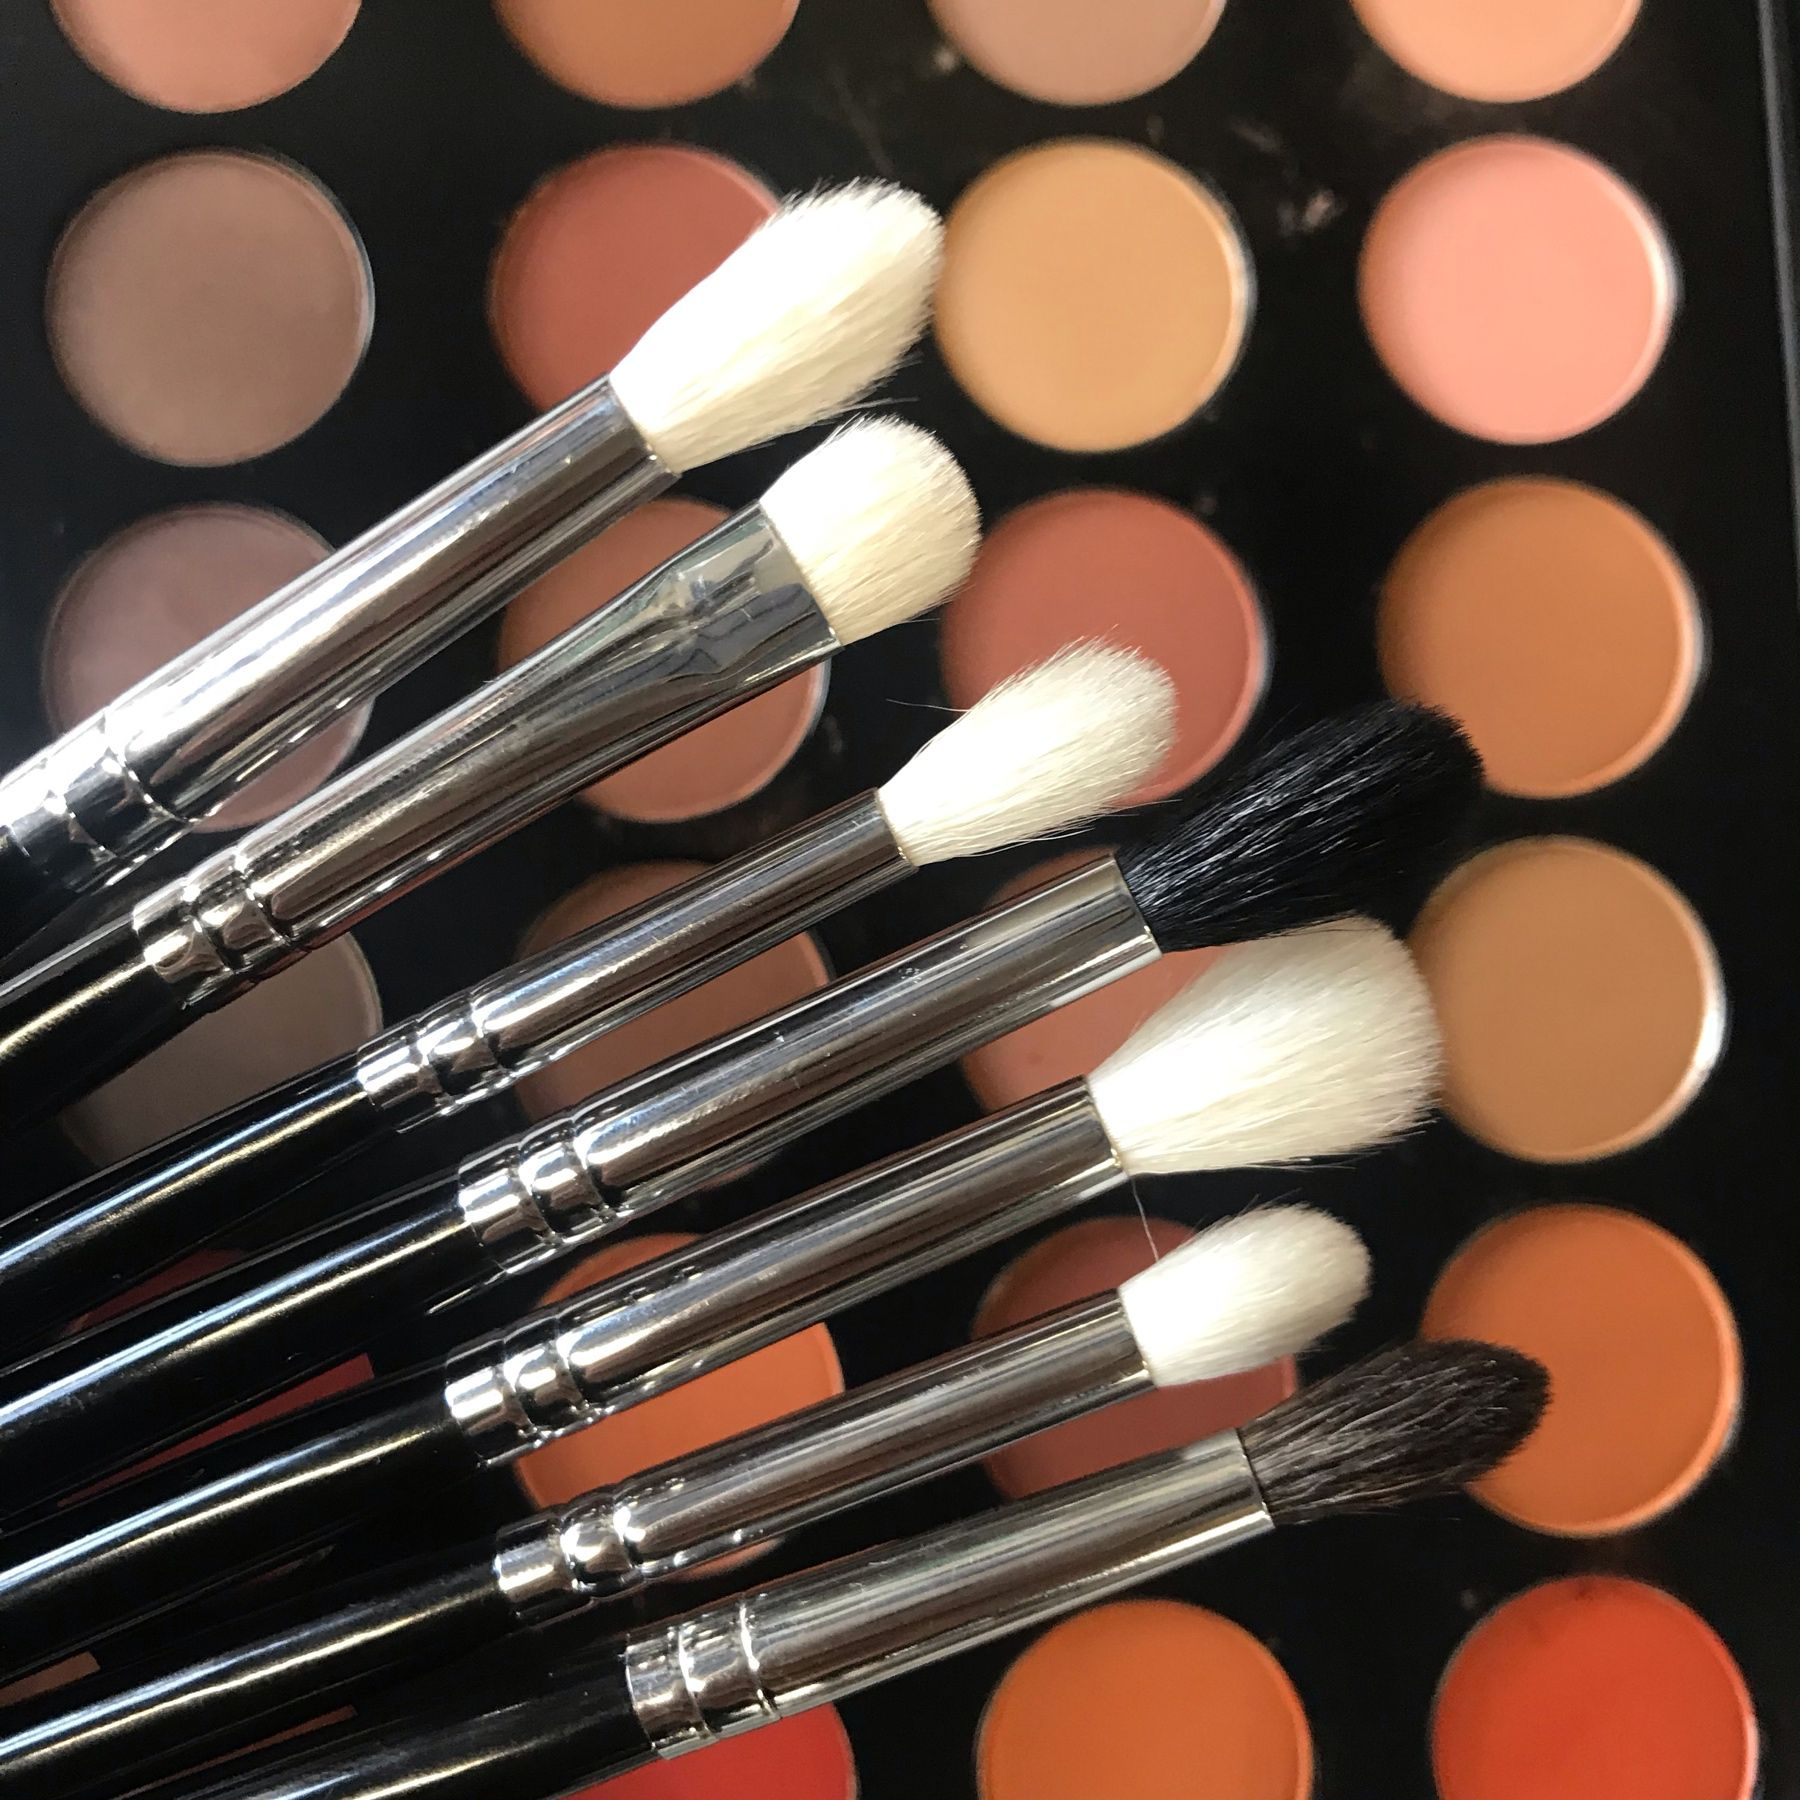 We love our ilo Cosmetics brushes! Available exclusively